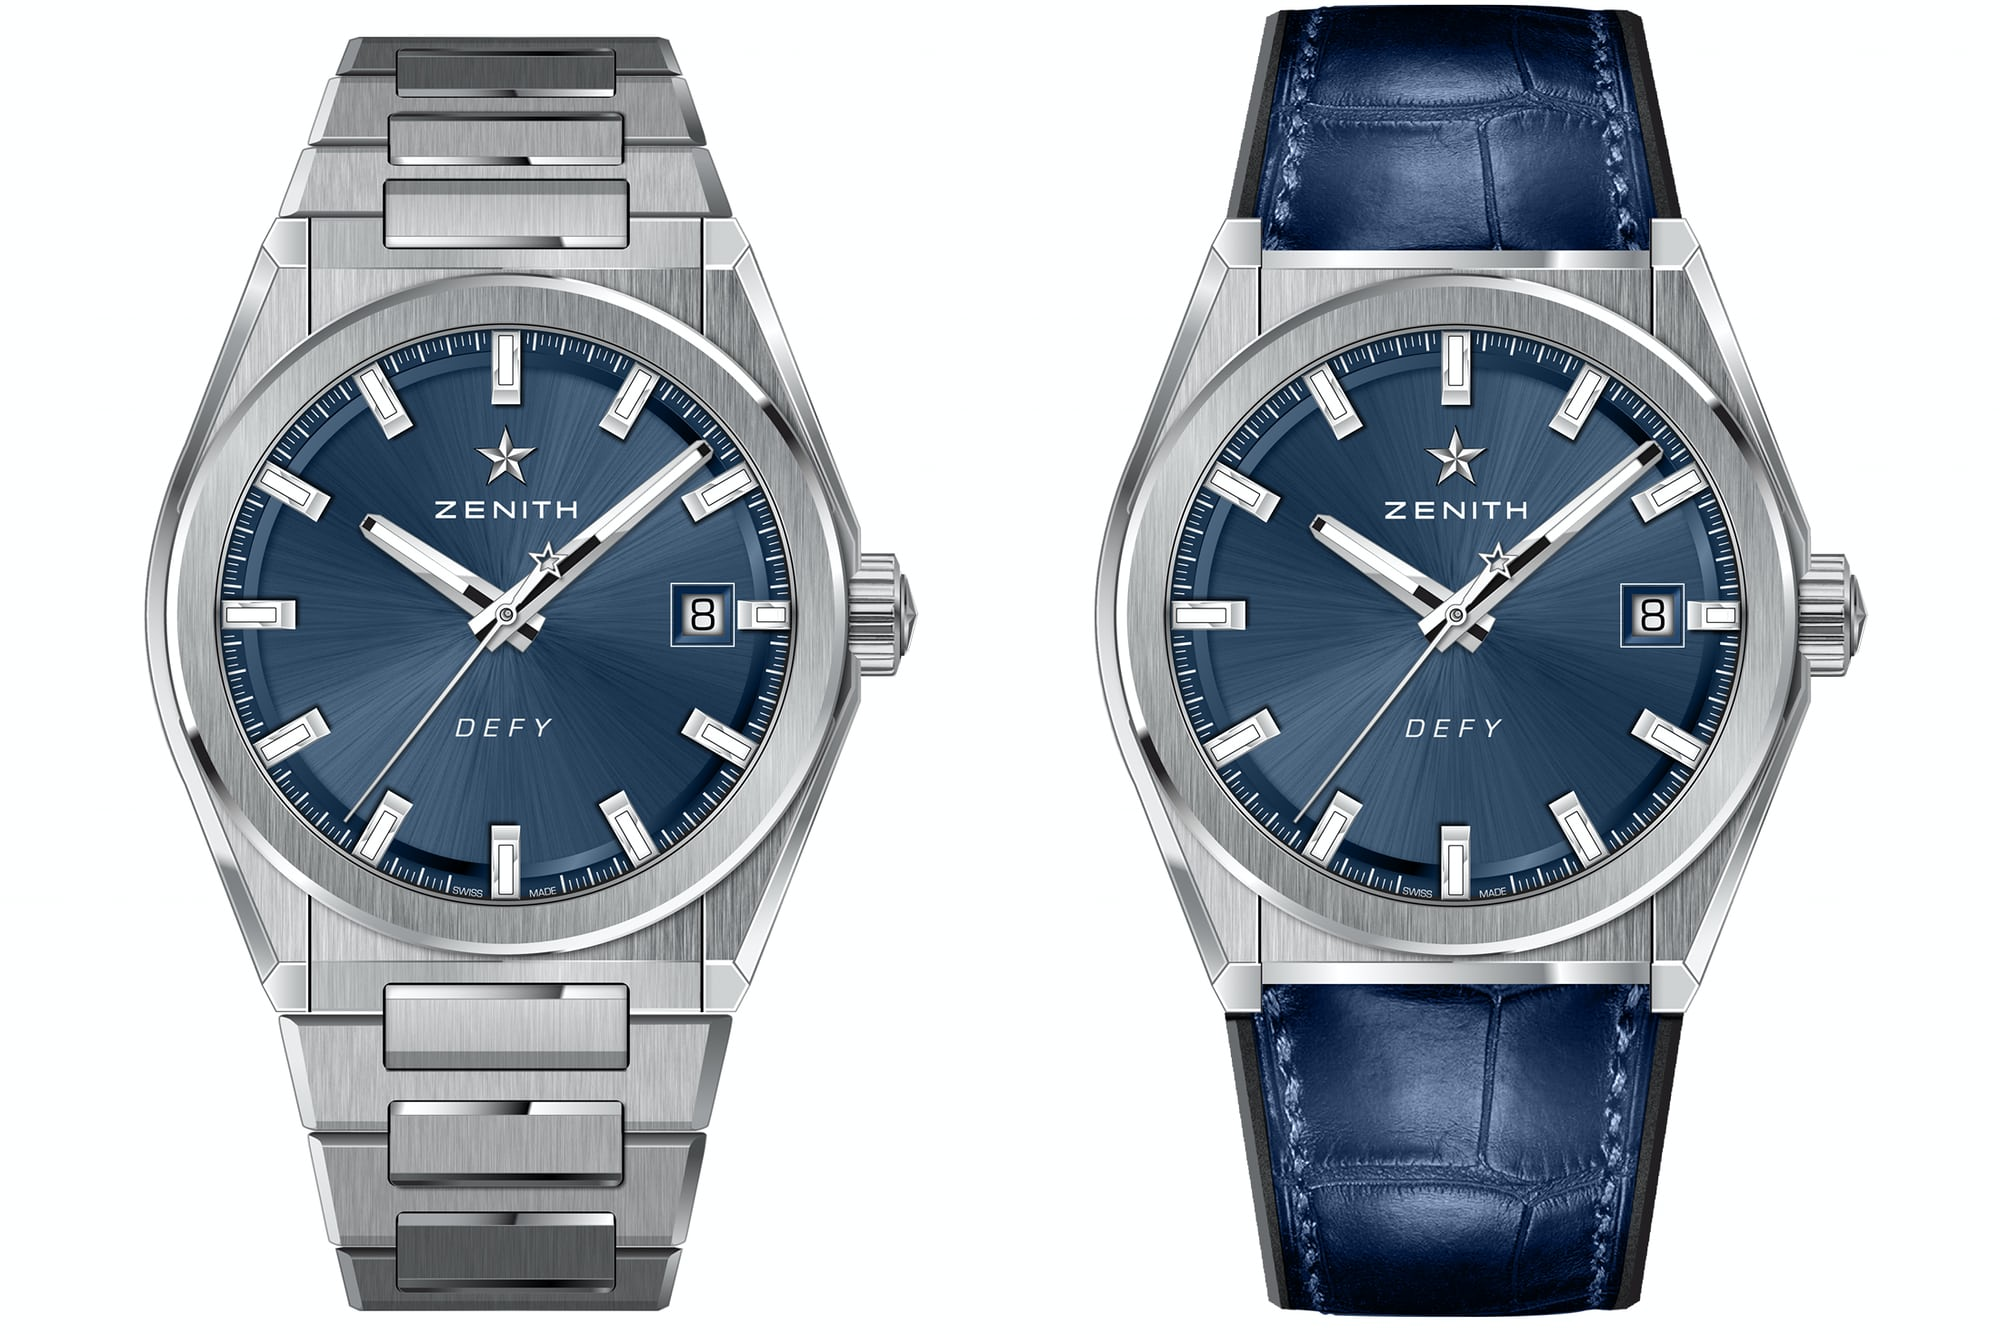 Introducing: The Zenith Defy Classic Introducing: The Zenith Defy Classic z 2